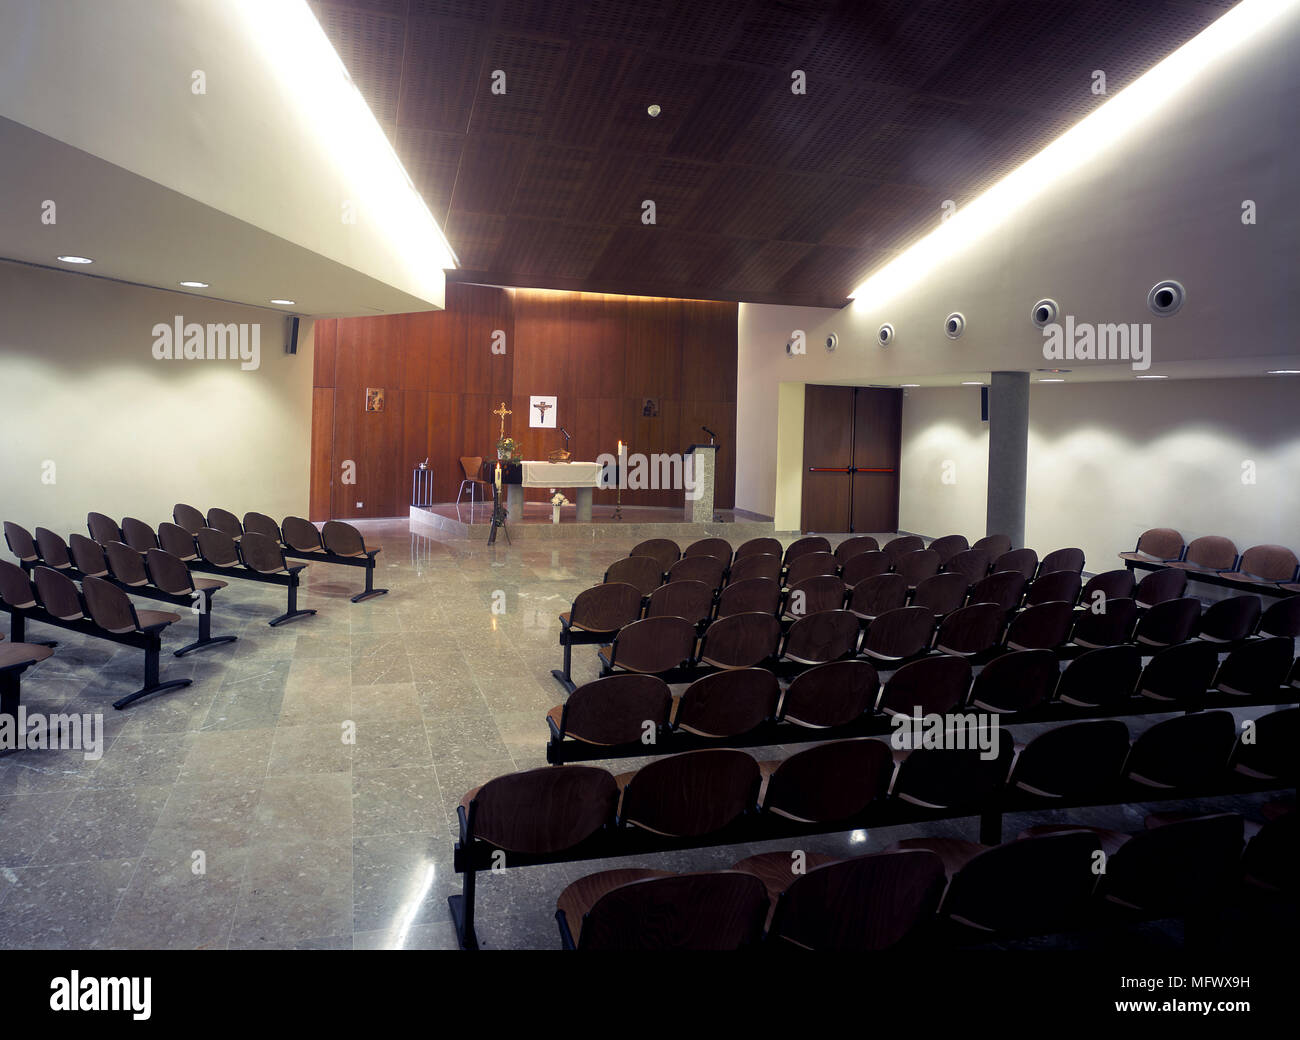 View Of Eclectic Seating Arrangement Inside An Assembly Hall Stock